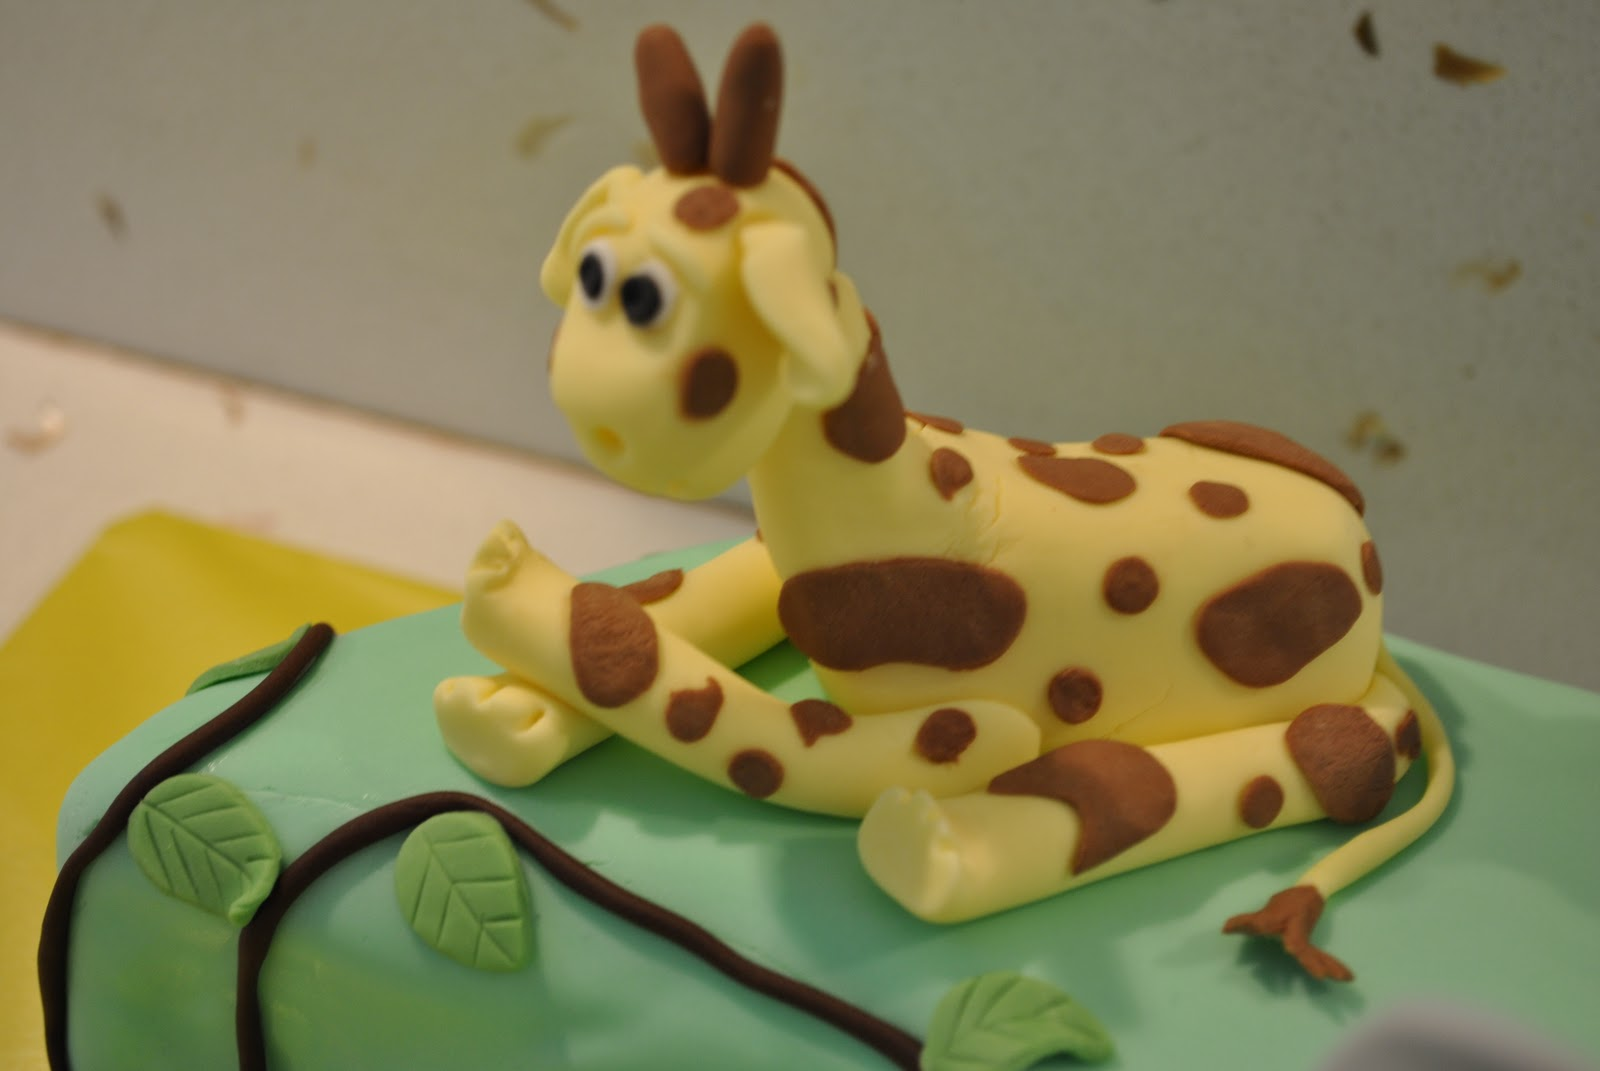 Covering Cake With Chocolate Modeling